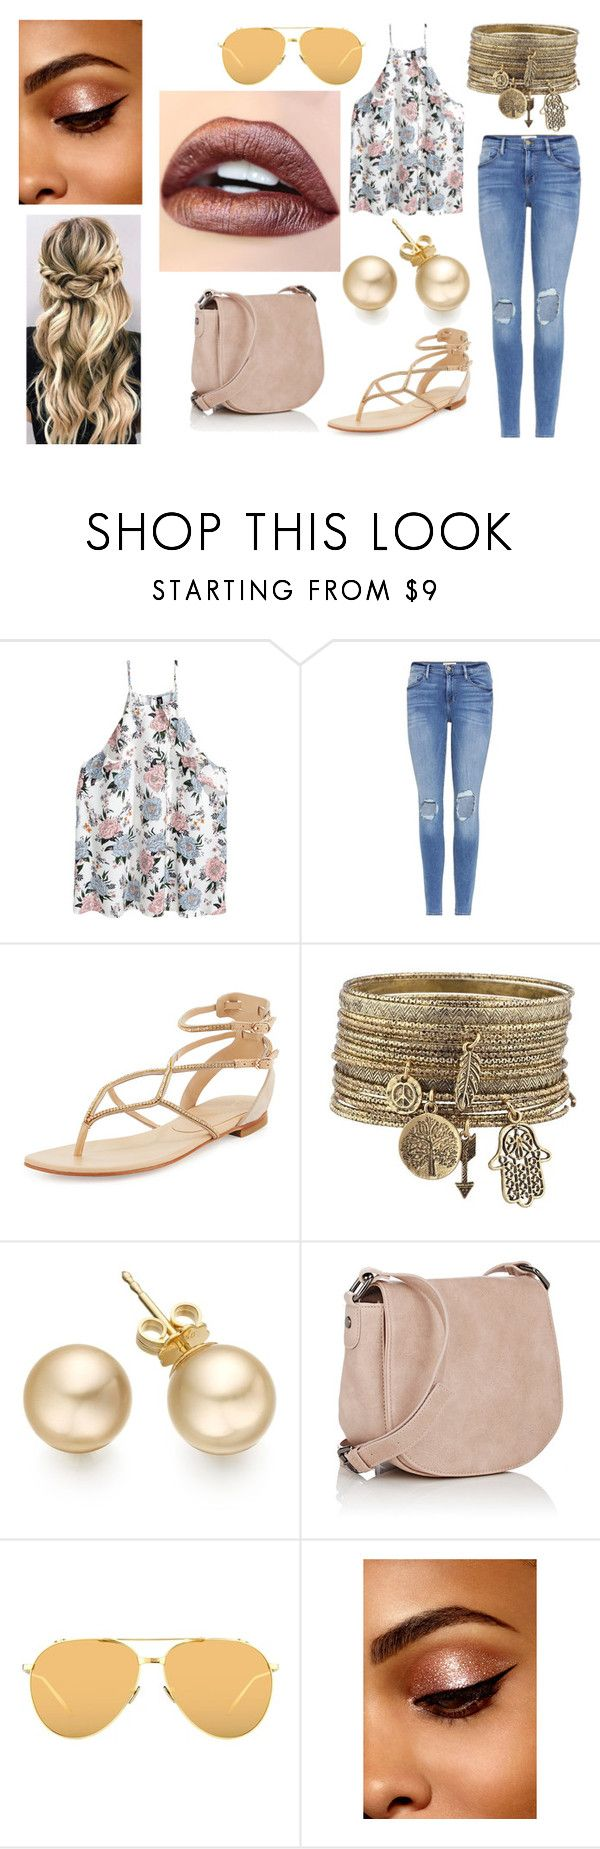 """Cute Summer outfit"" by lewandowski2017 ❤ liked on Polyvore featuring Frame, Lola Cruz, Deux Lux and Linda Farrow"